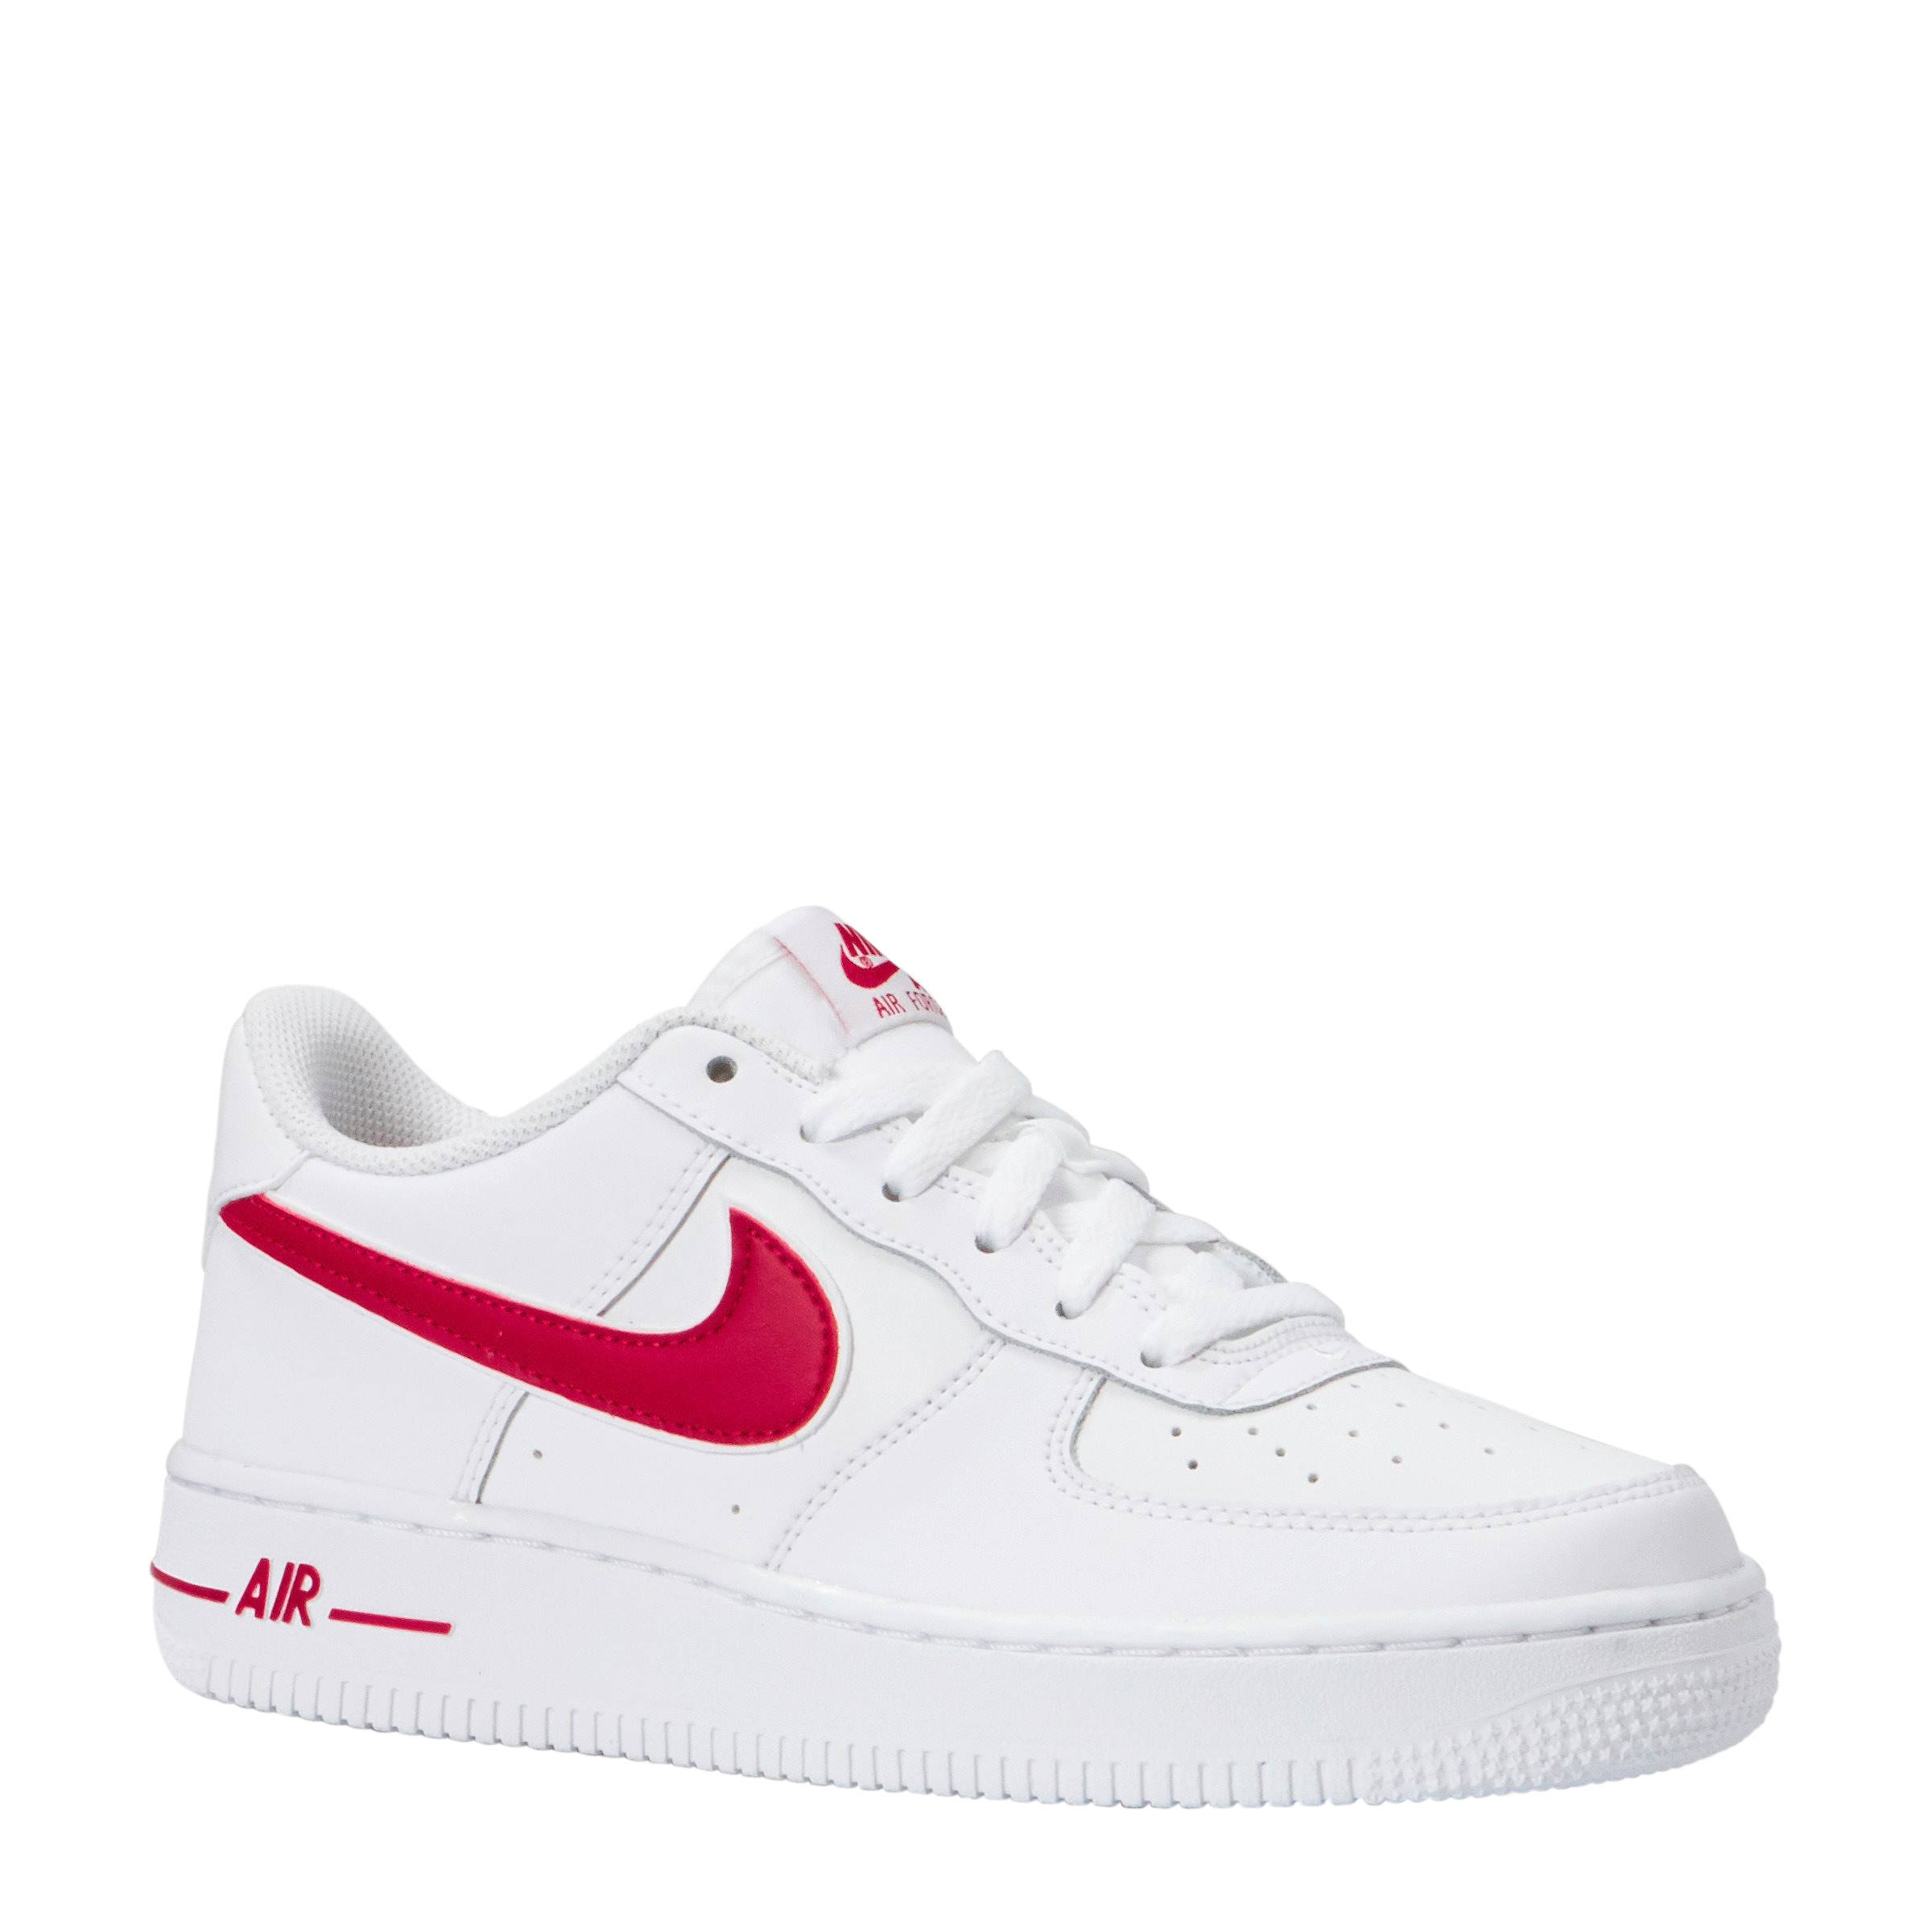 air force 1 rood|air force 1 rood original